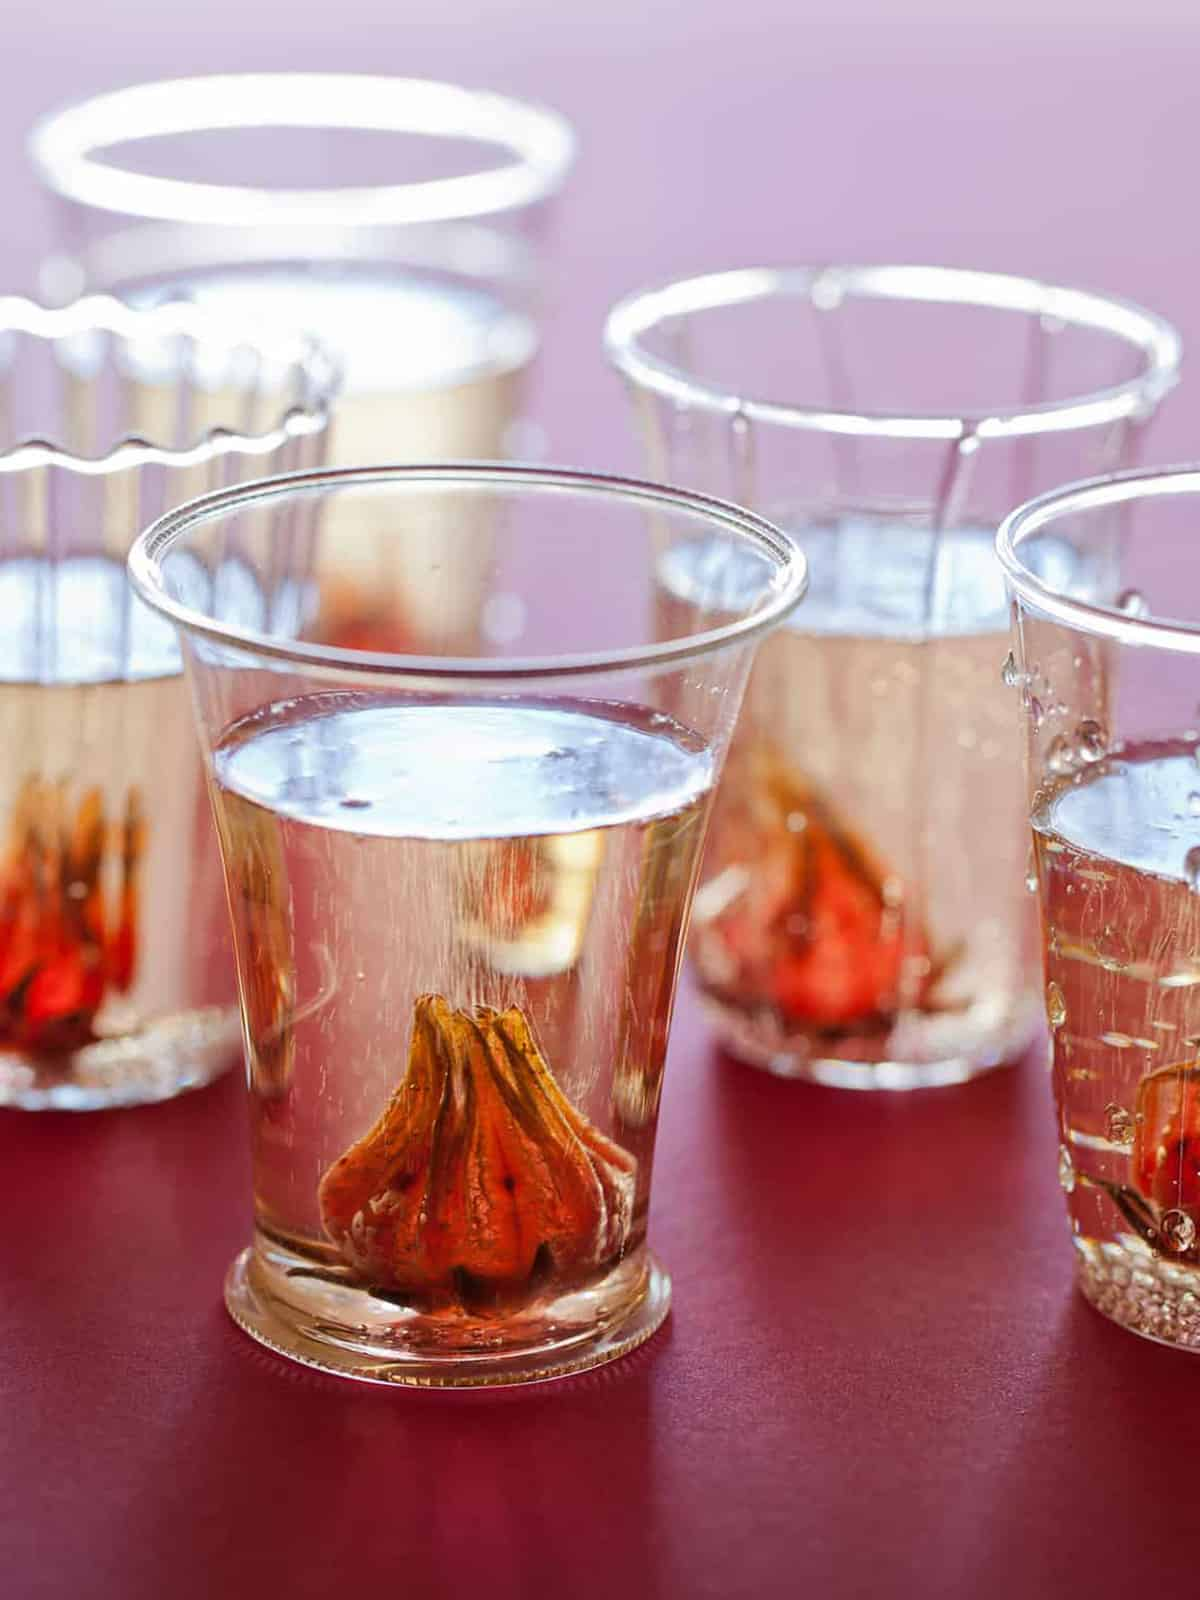 A close up of glasses of hibiscus ginger champagne cocktails.